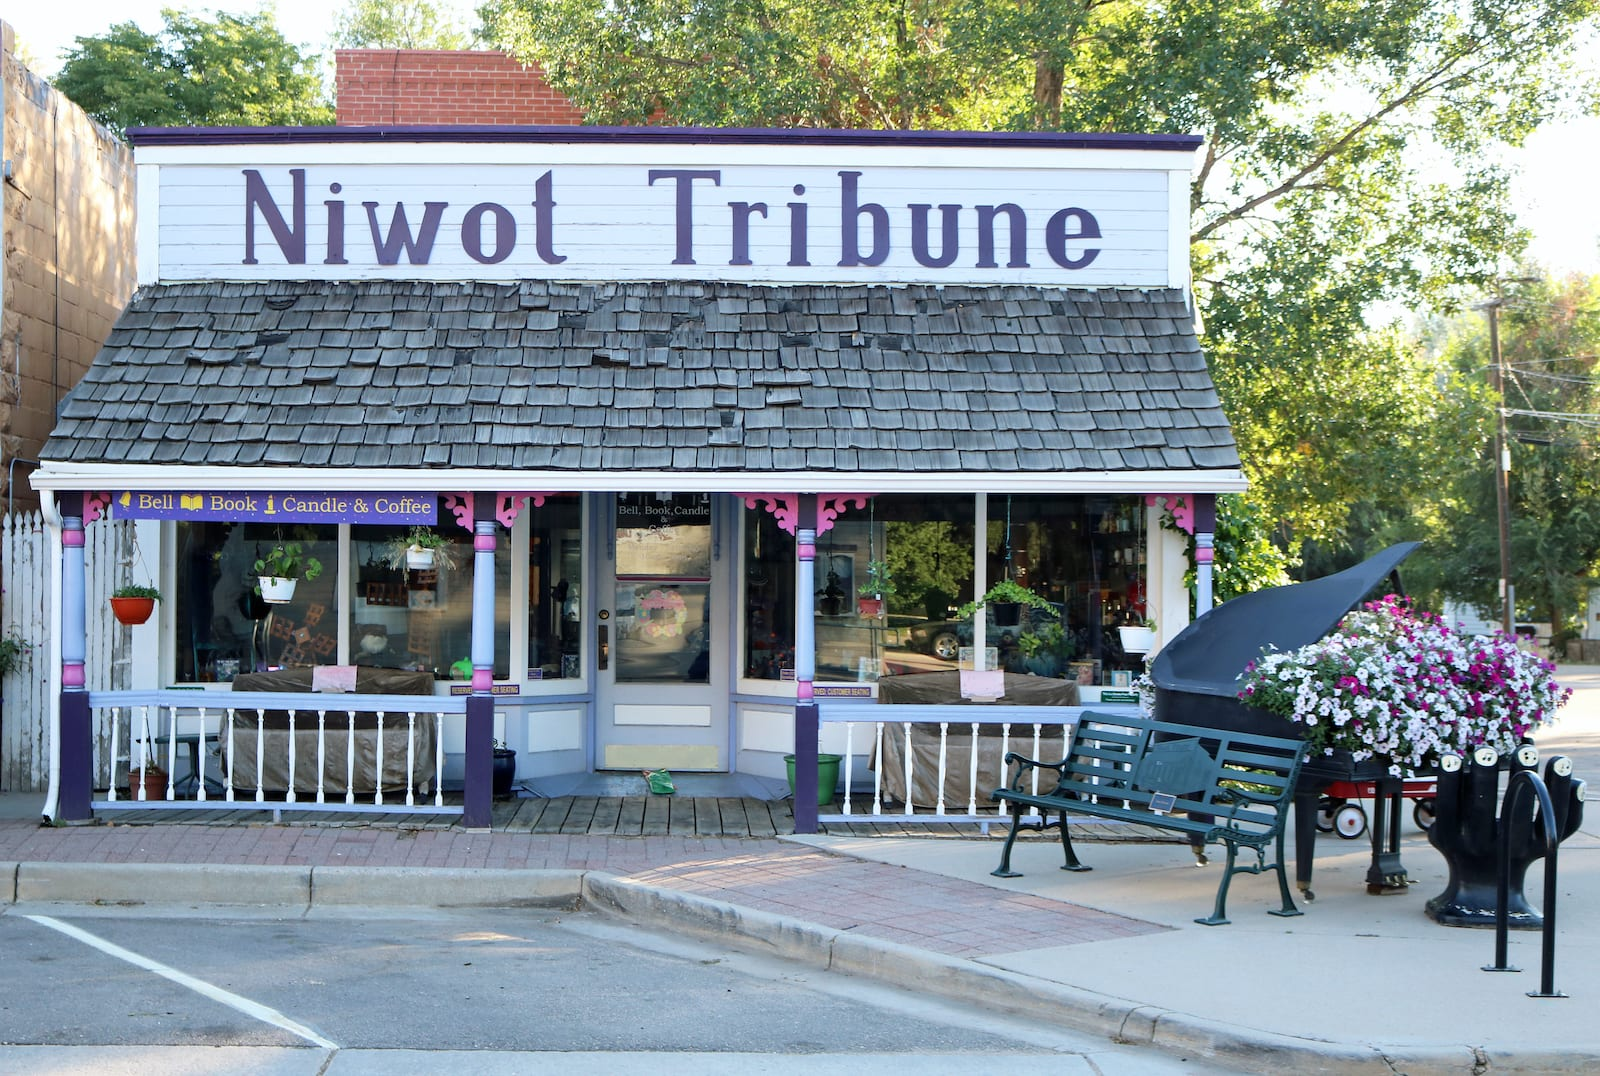 Old Niwot Tribune Colorado